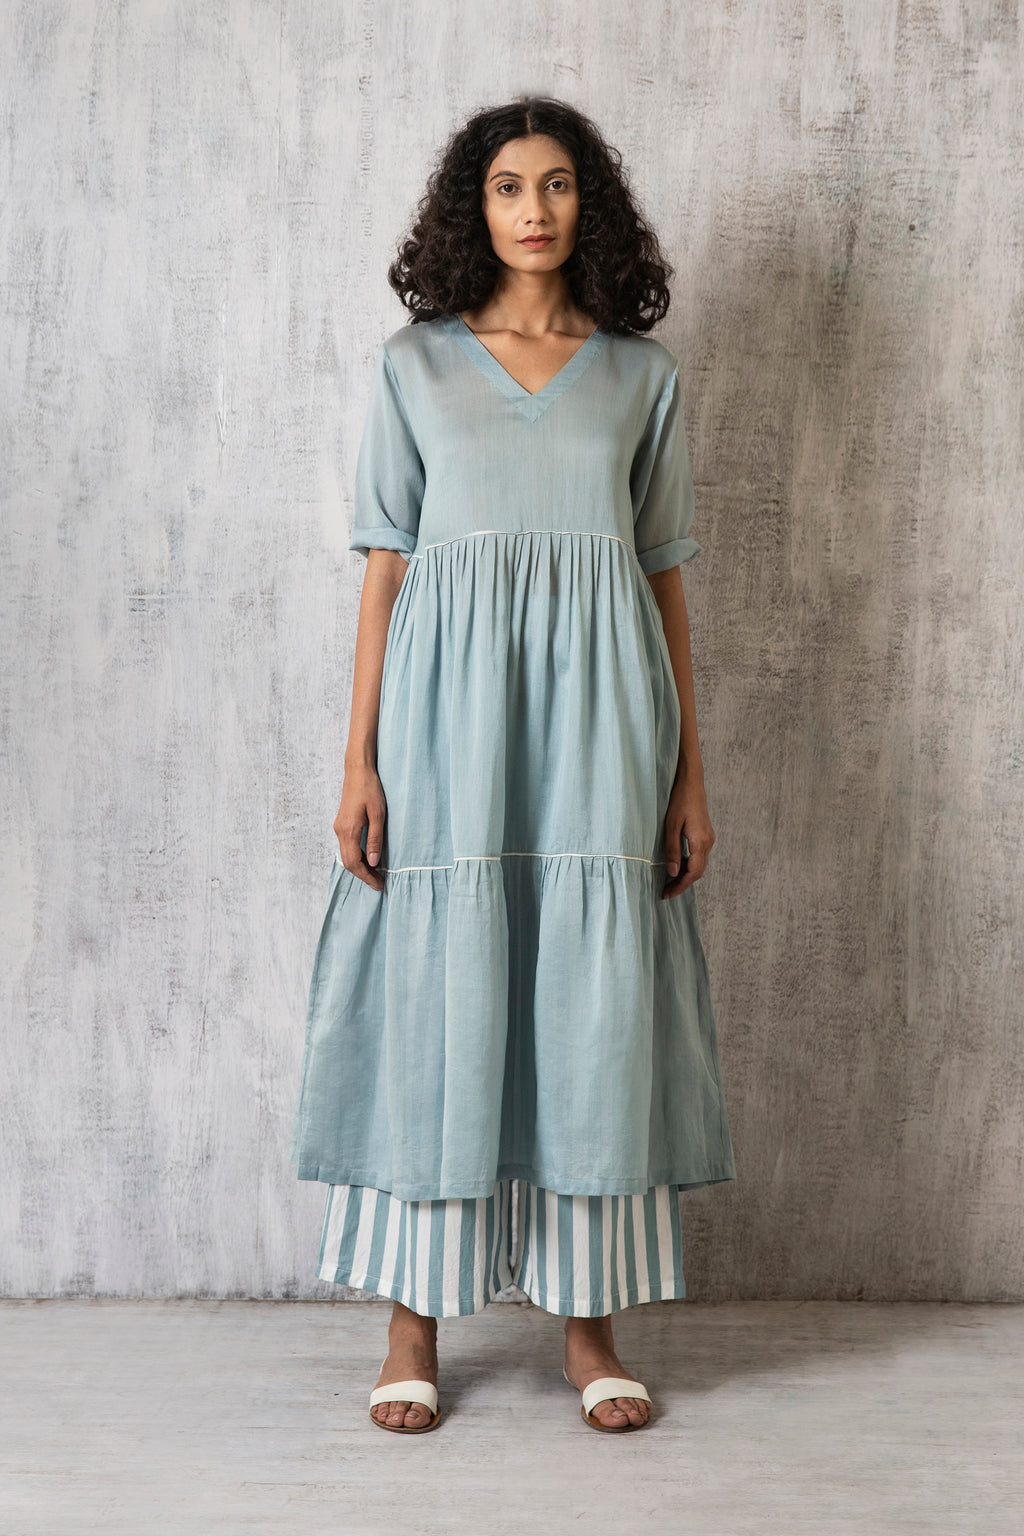 V Neck Frill Dress Co-ord- Cloudless blue